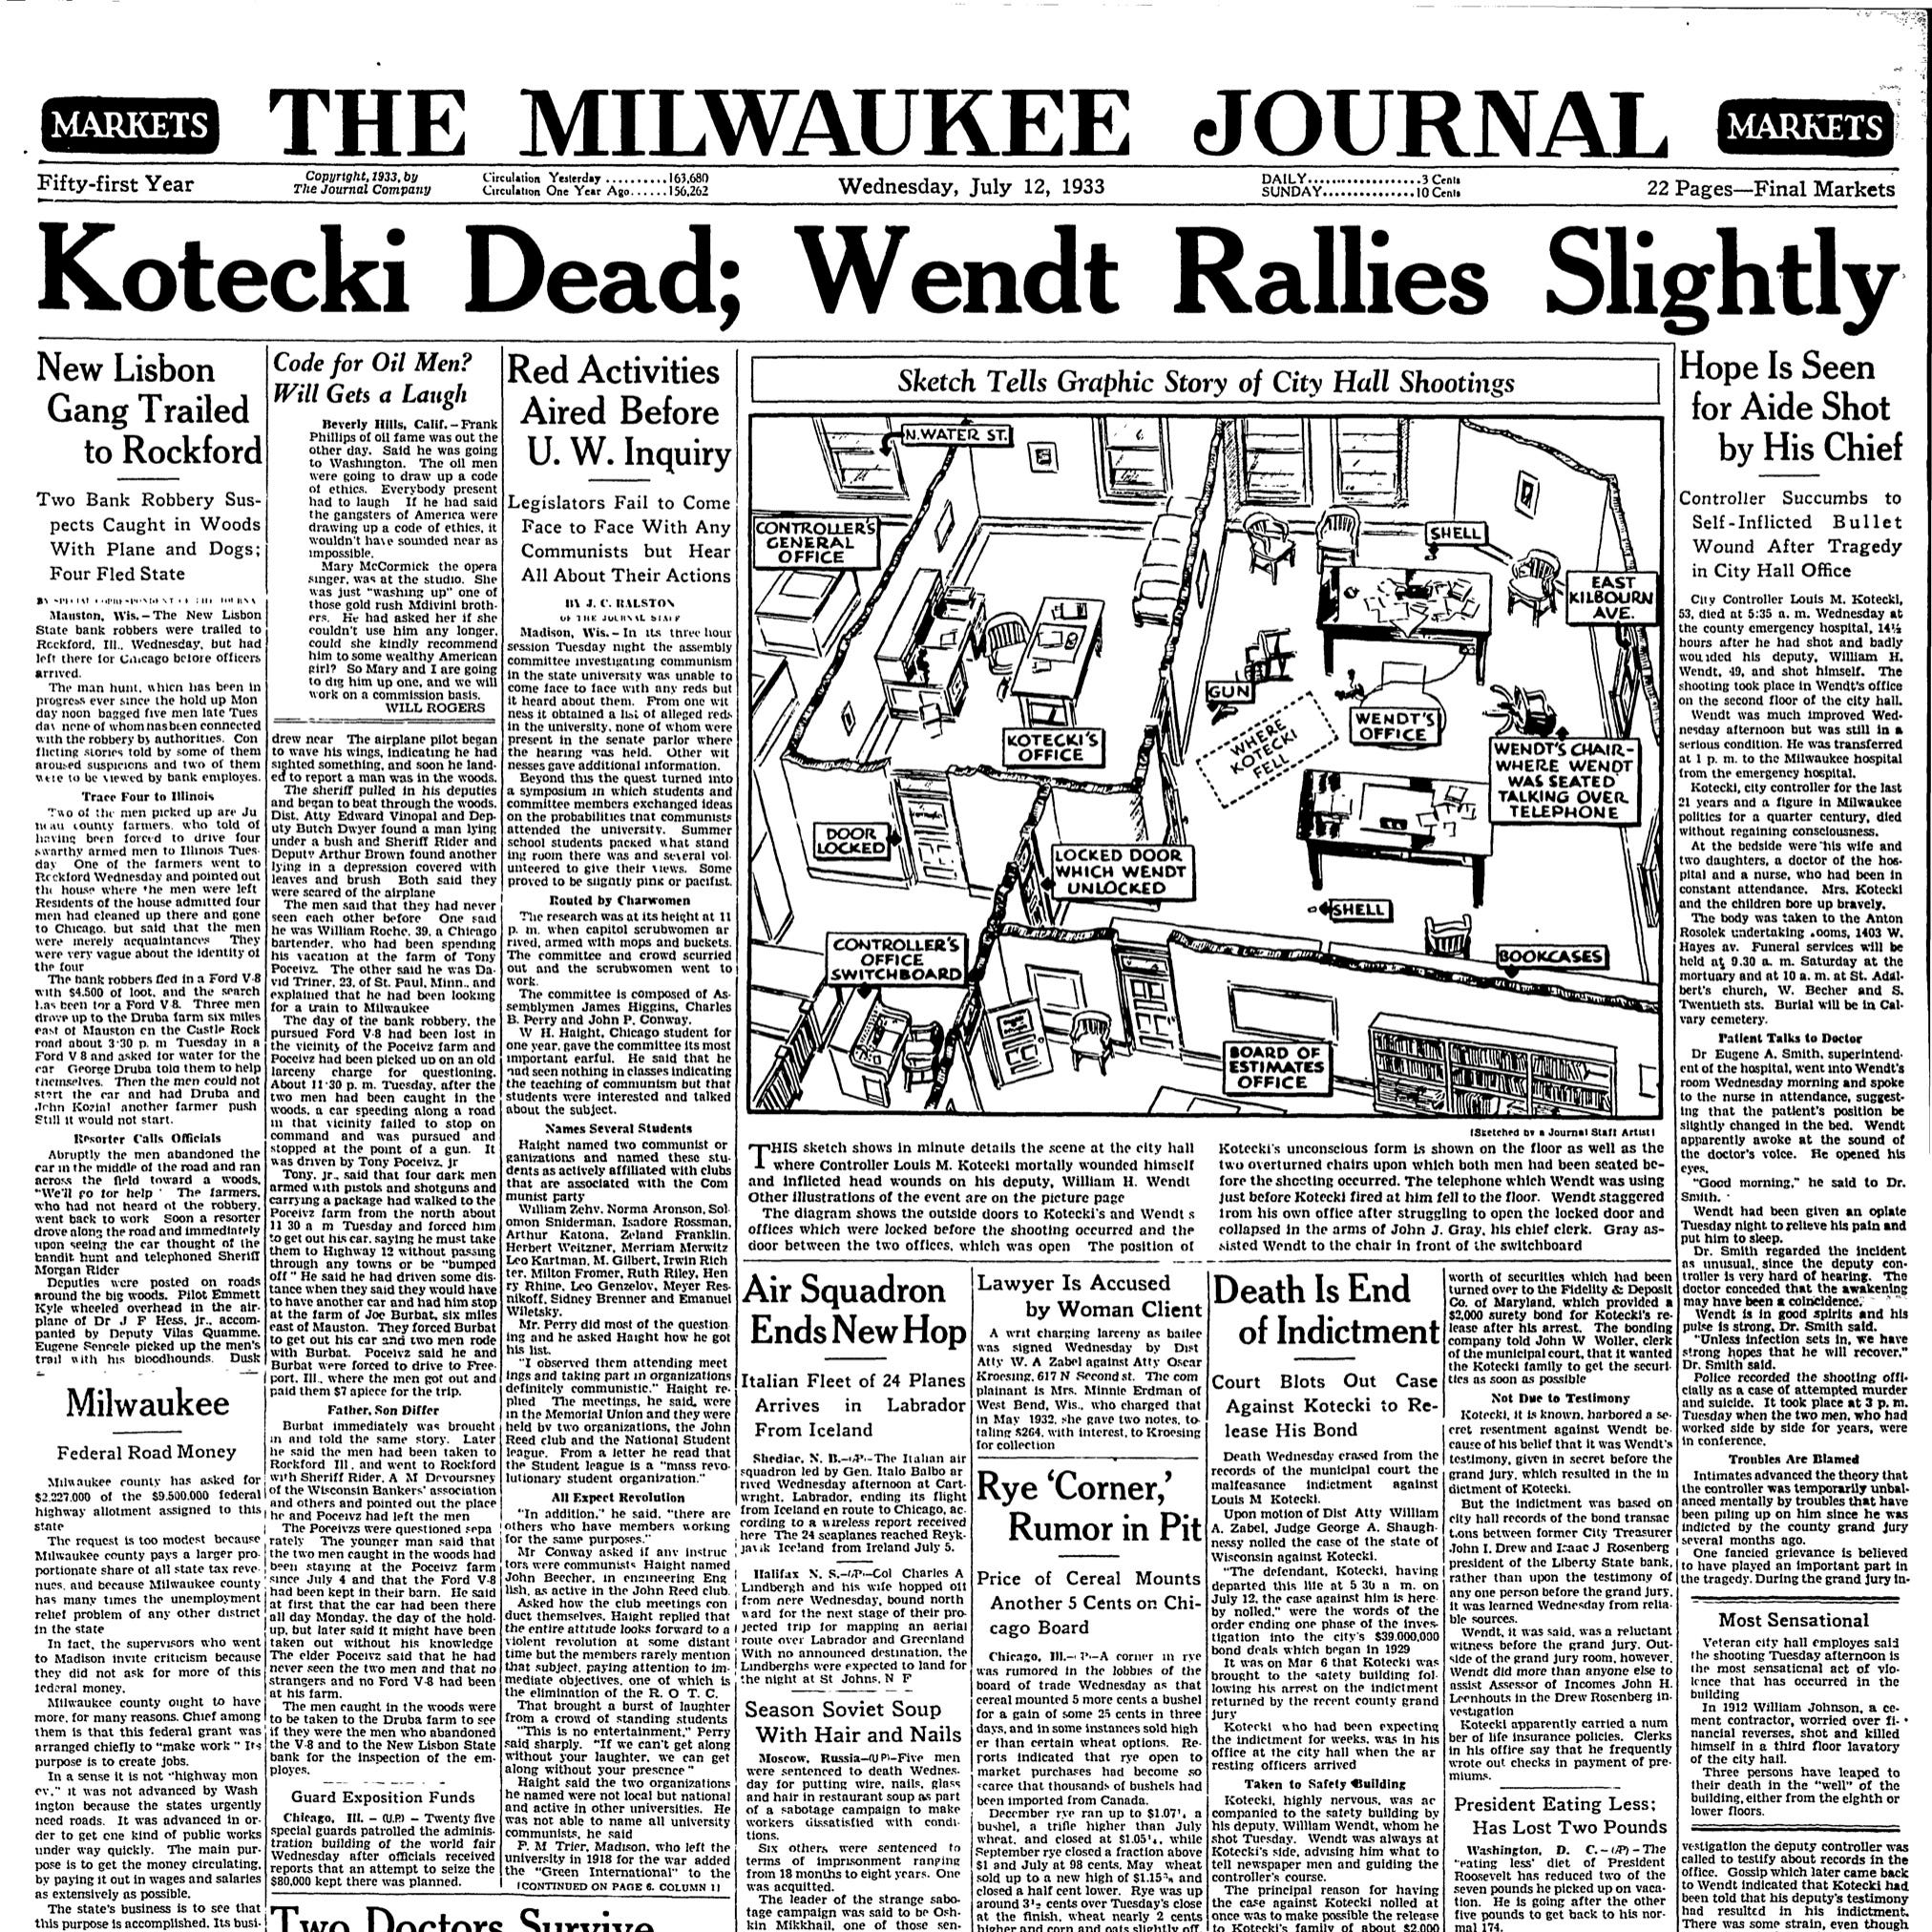 Stingl: Milwaukee comptroller shot up City Hall in 1933, but there's a memorial to him in a park